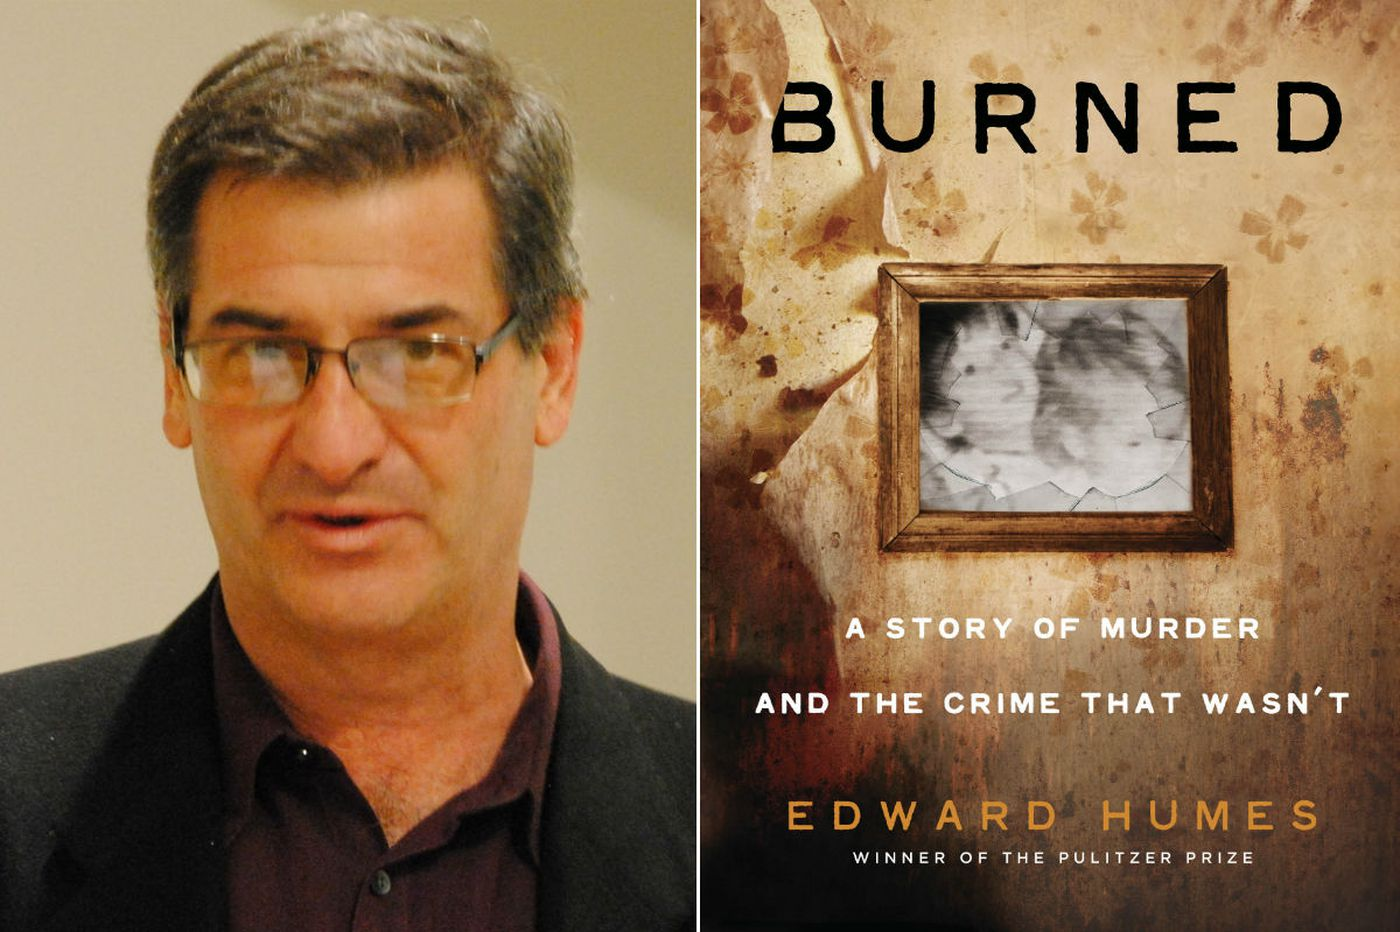 'Burned' by Edward Humes: Out of the ashes, the dirty secrets of forensic science